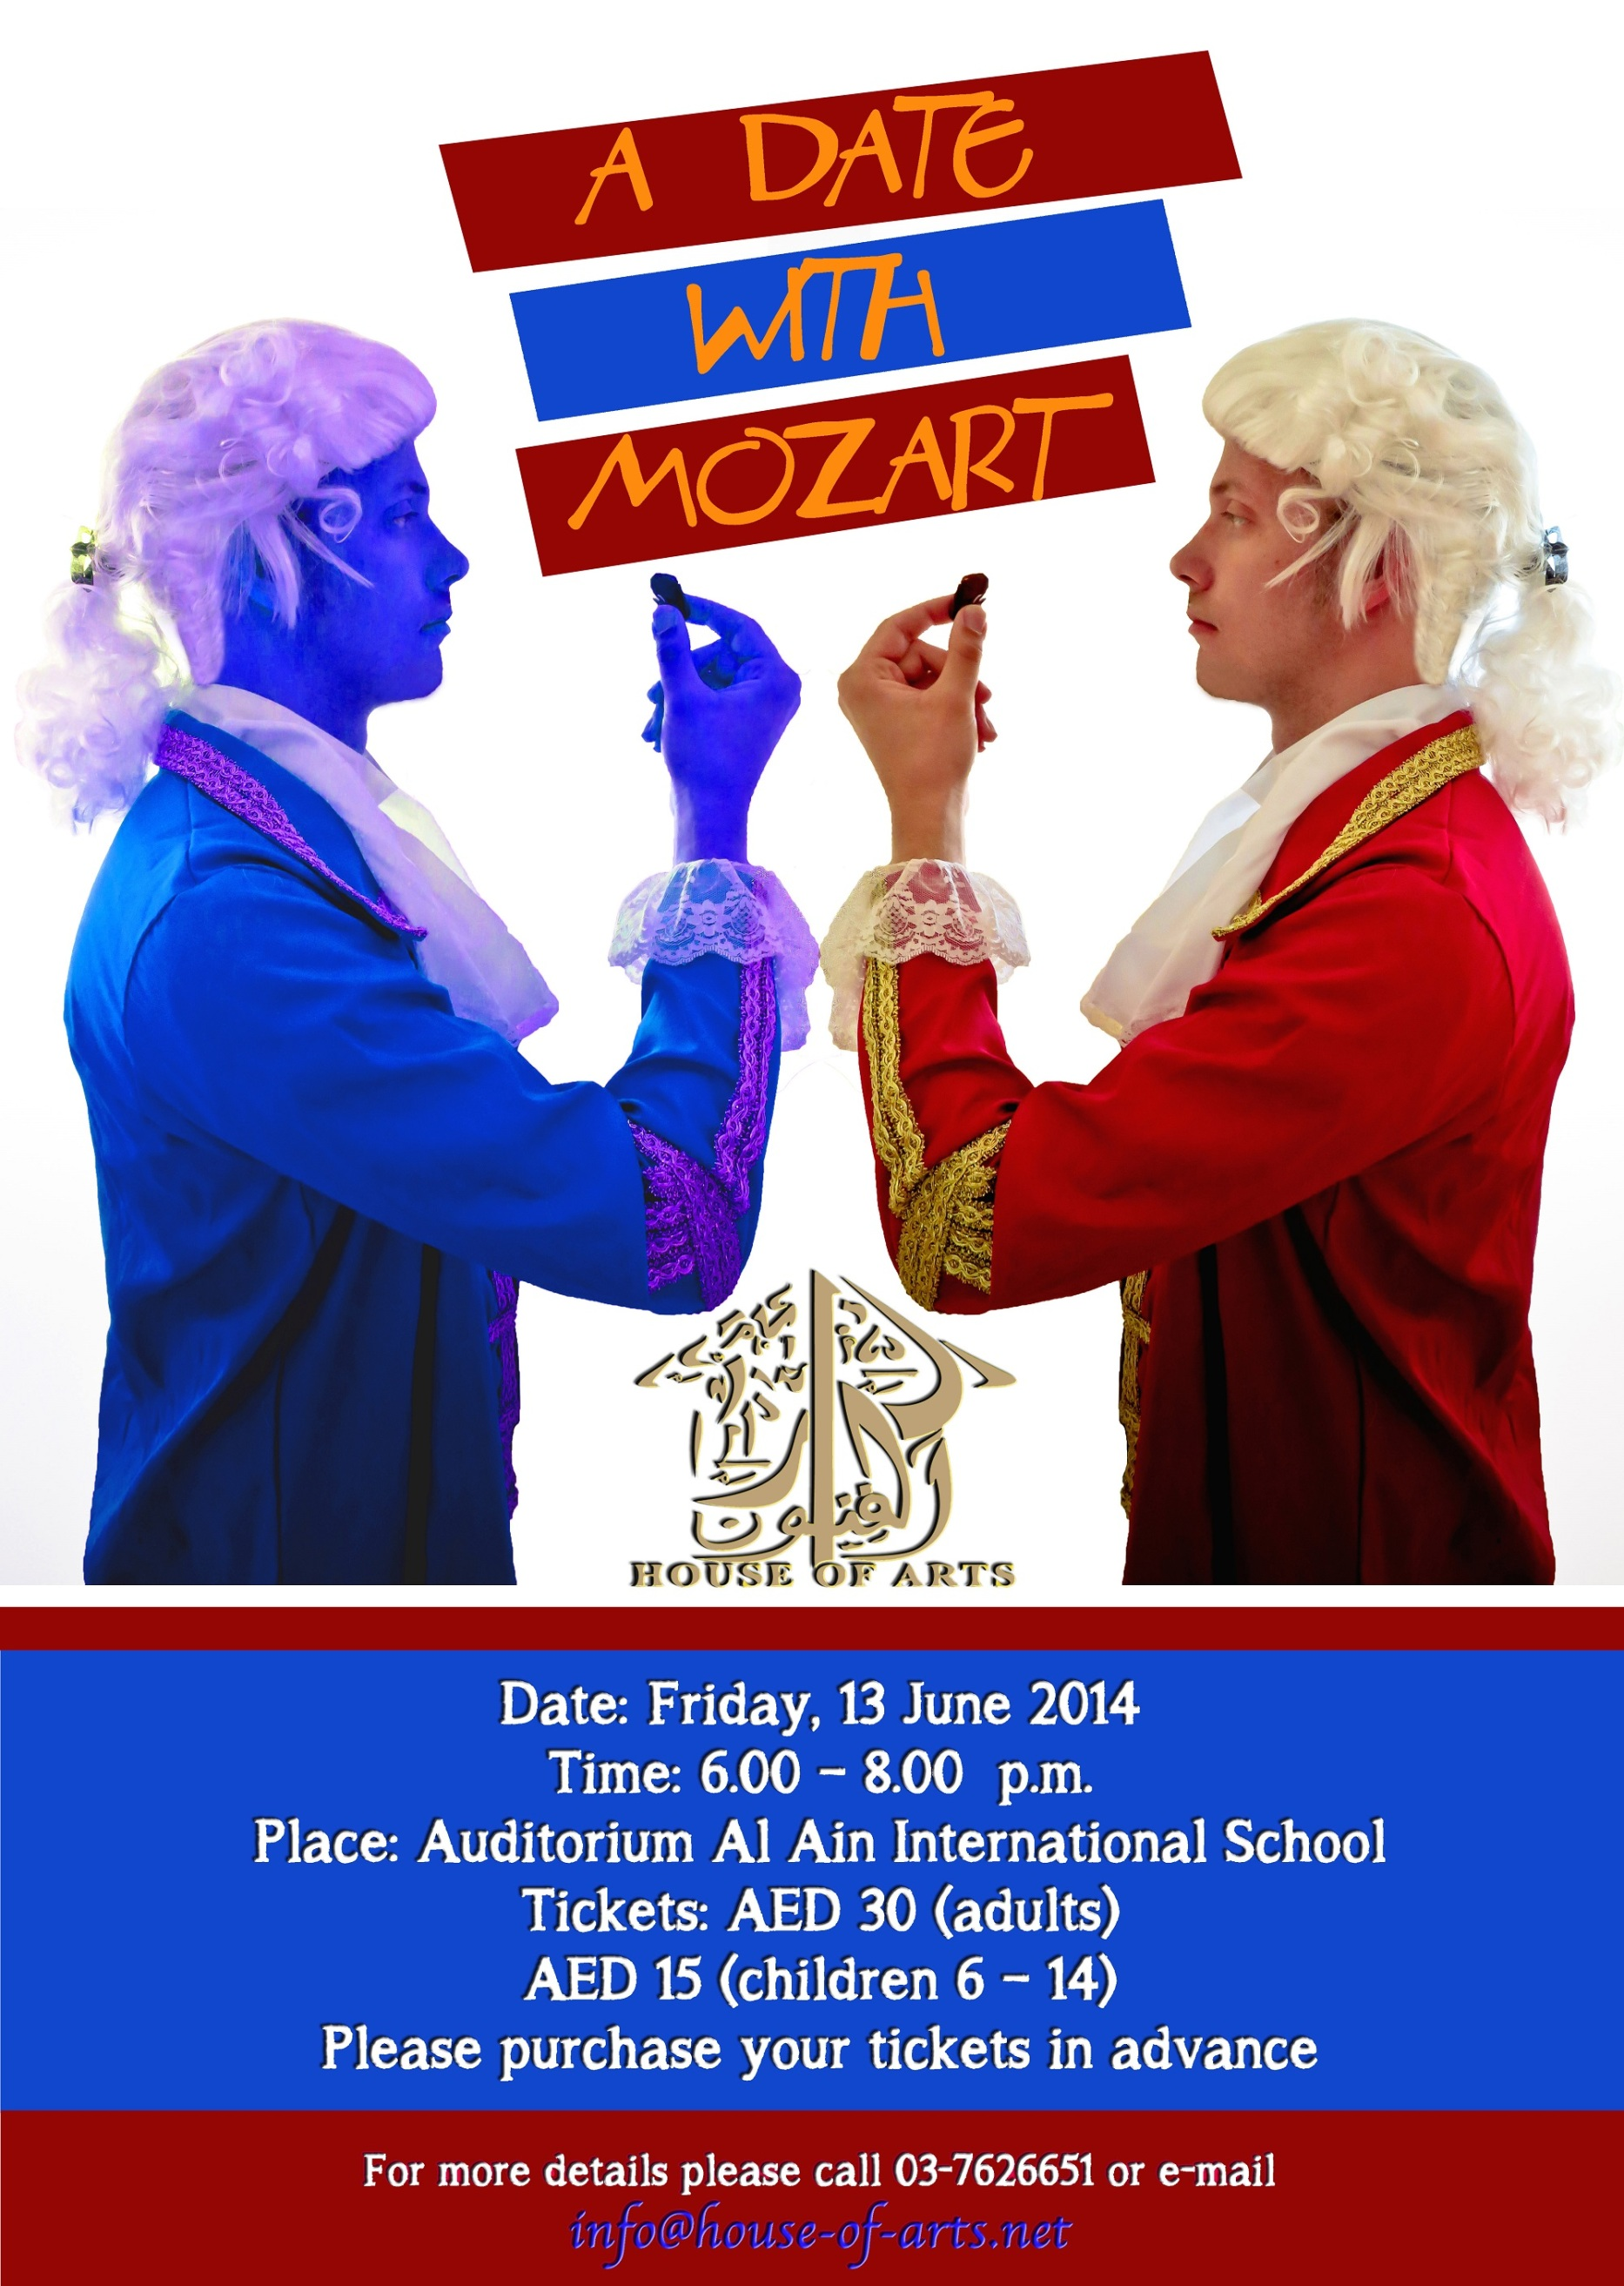 A Date with Mozart on 13th June